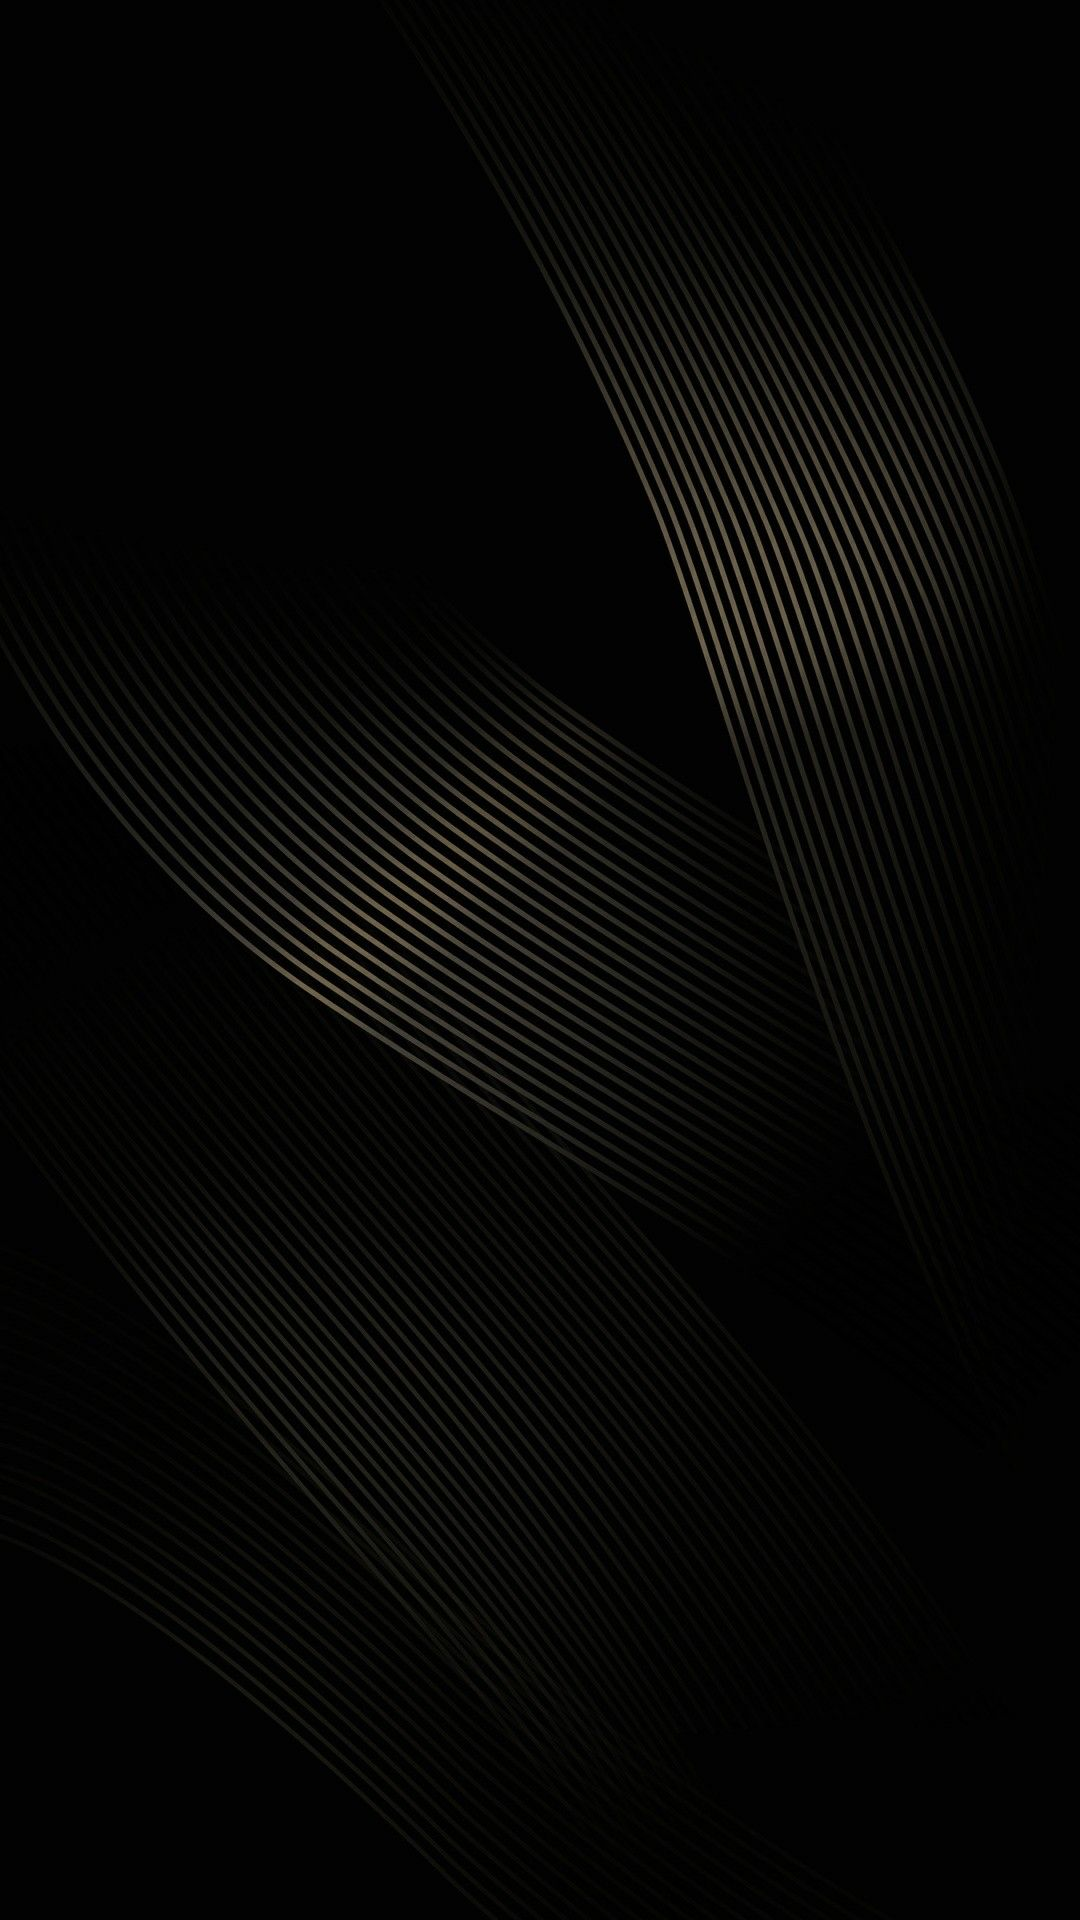 Black Ribbed Ribbon Wallpaper Black phone wallpaper